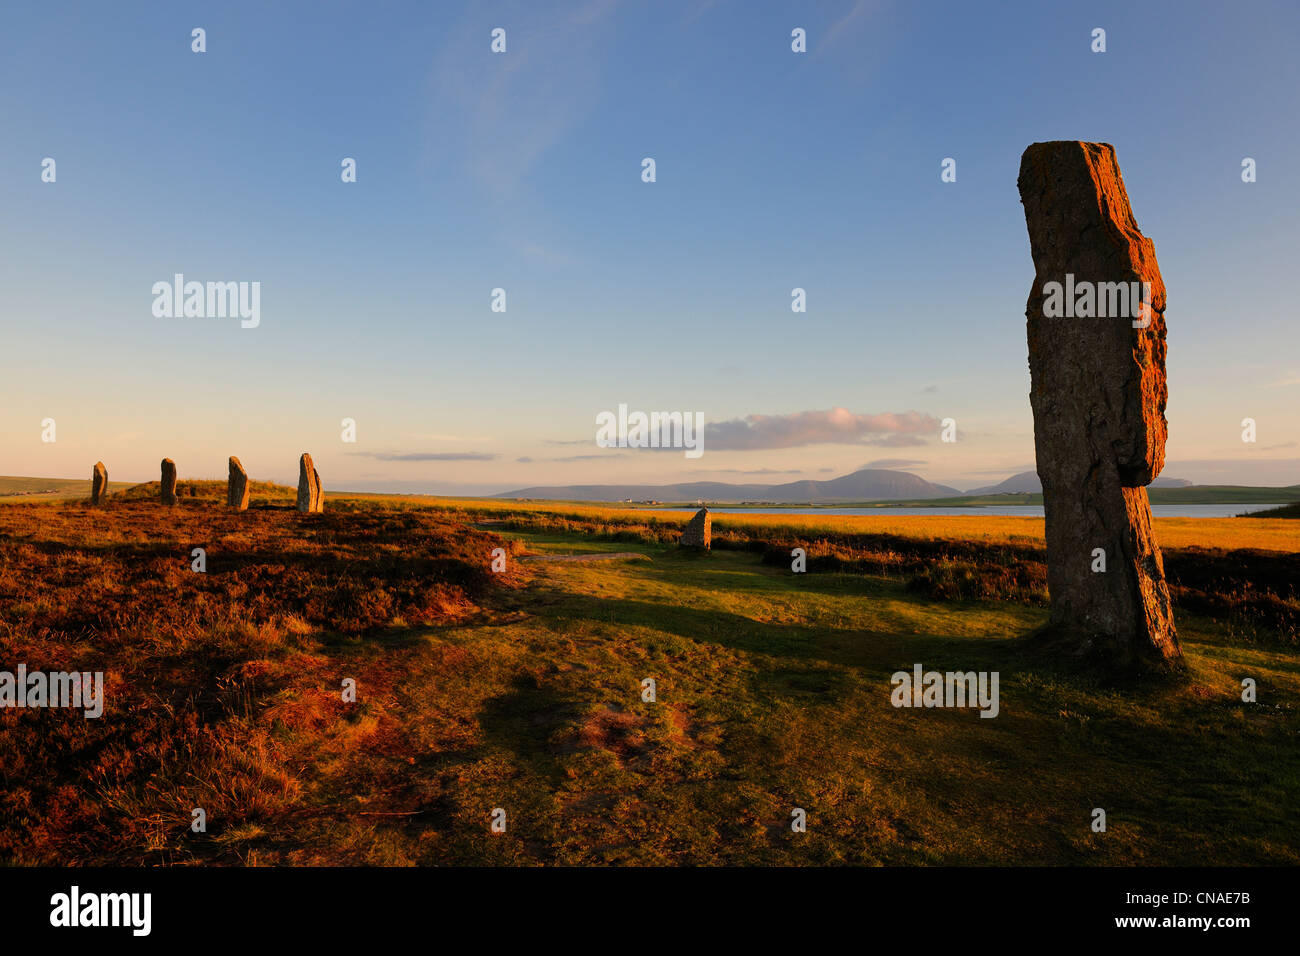 United Kingdom, Scotland, Orkney Islands, Mainland Island, beside the Loch of Stenness, standing stones (stone circle) - Stock Image